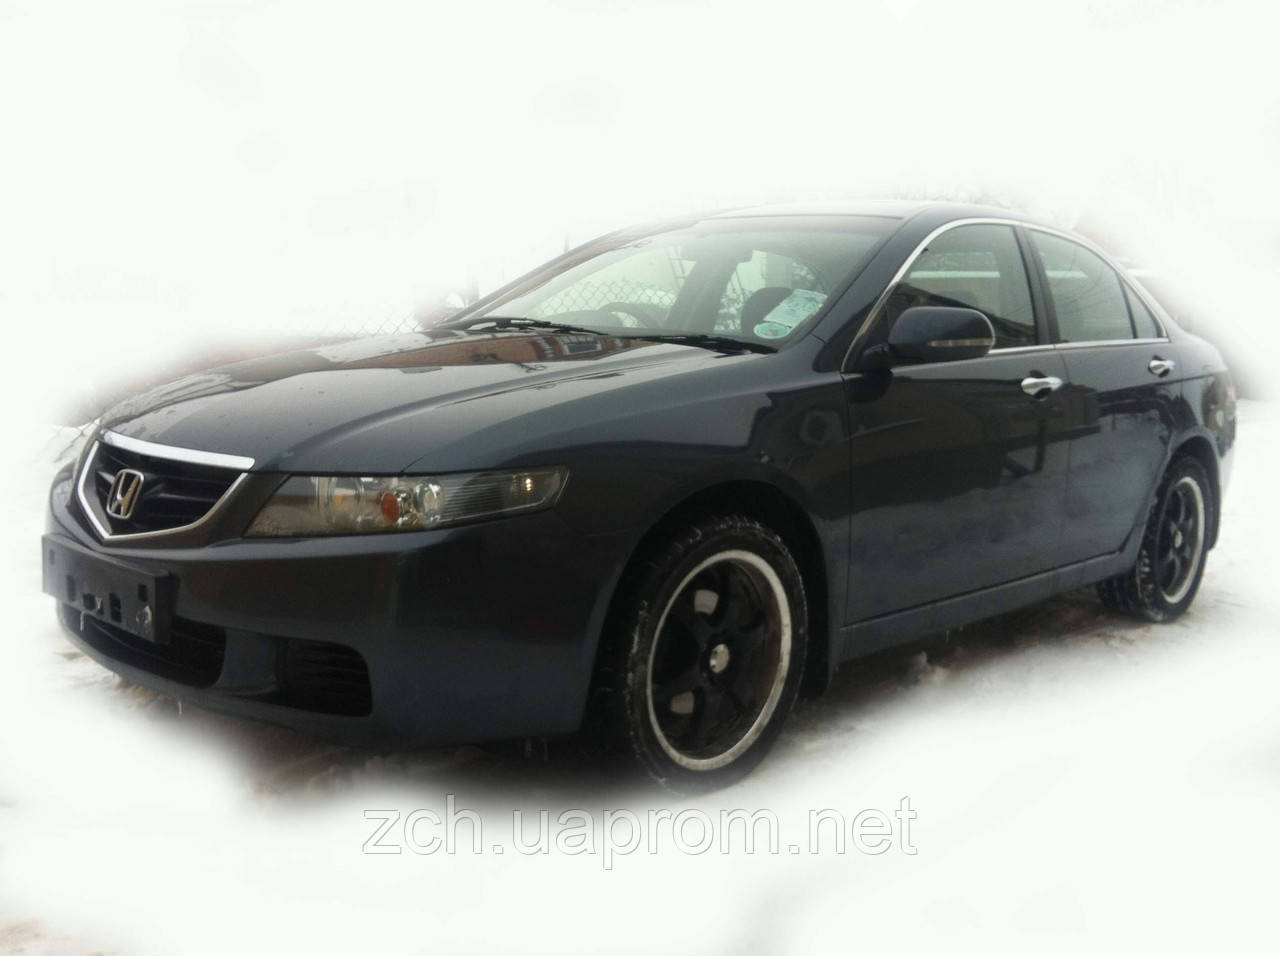 Дифузор 2.0 и 2.4 Honda Accord